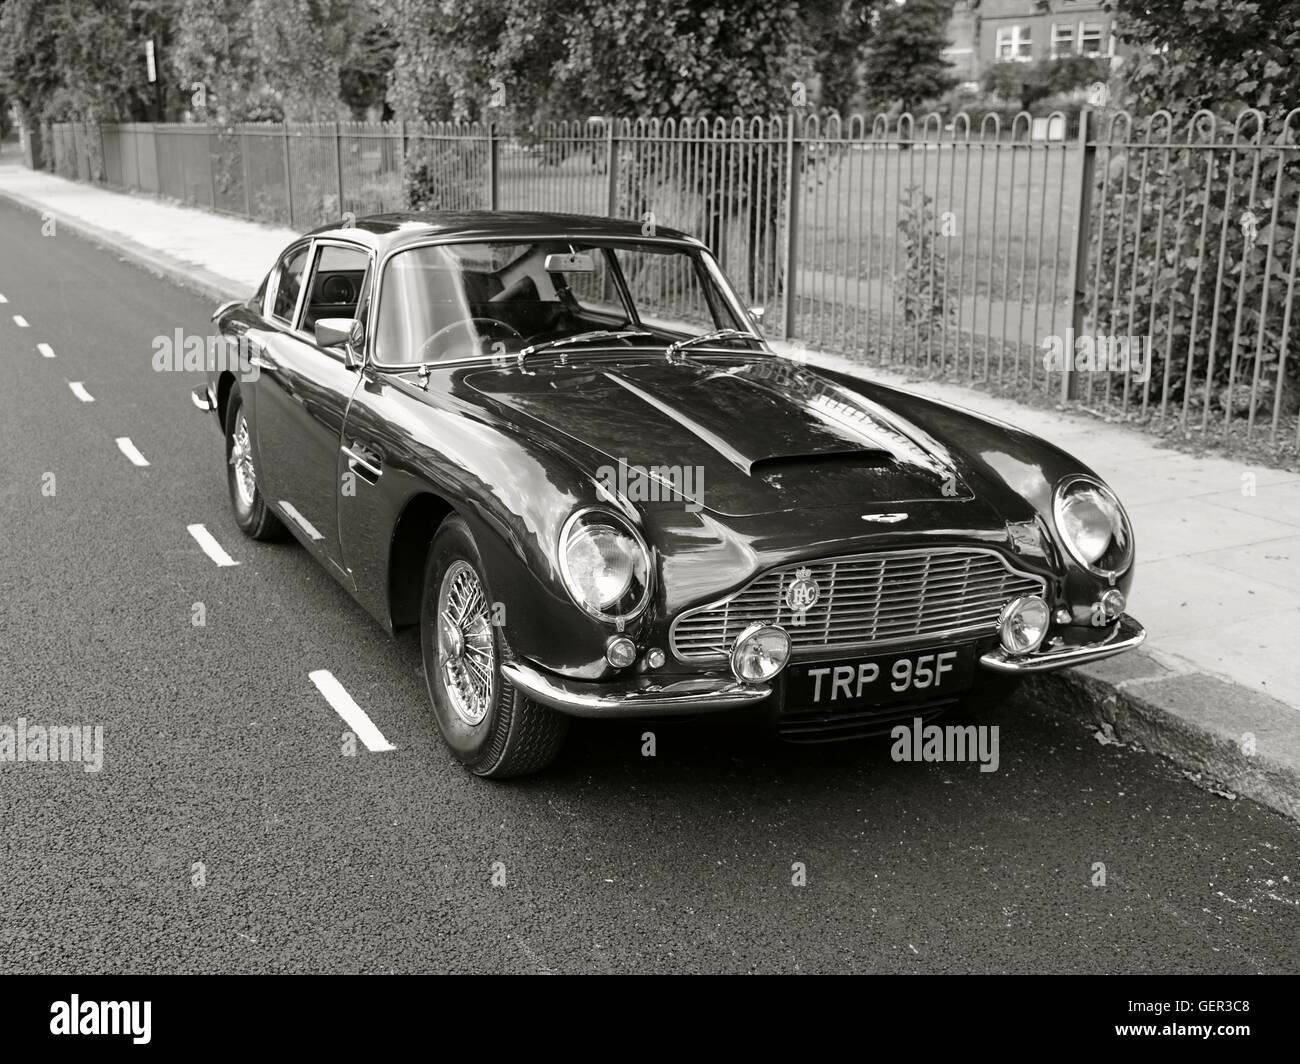 Black and white shot of Aston Martin DB6 classic car parked on suburban street by railings with a park beyond - Stock Image